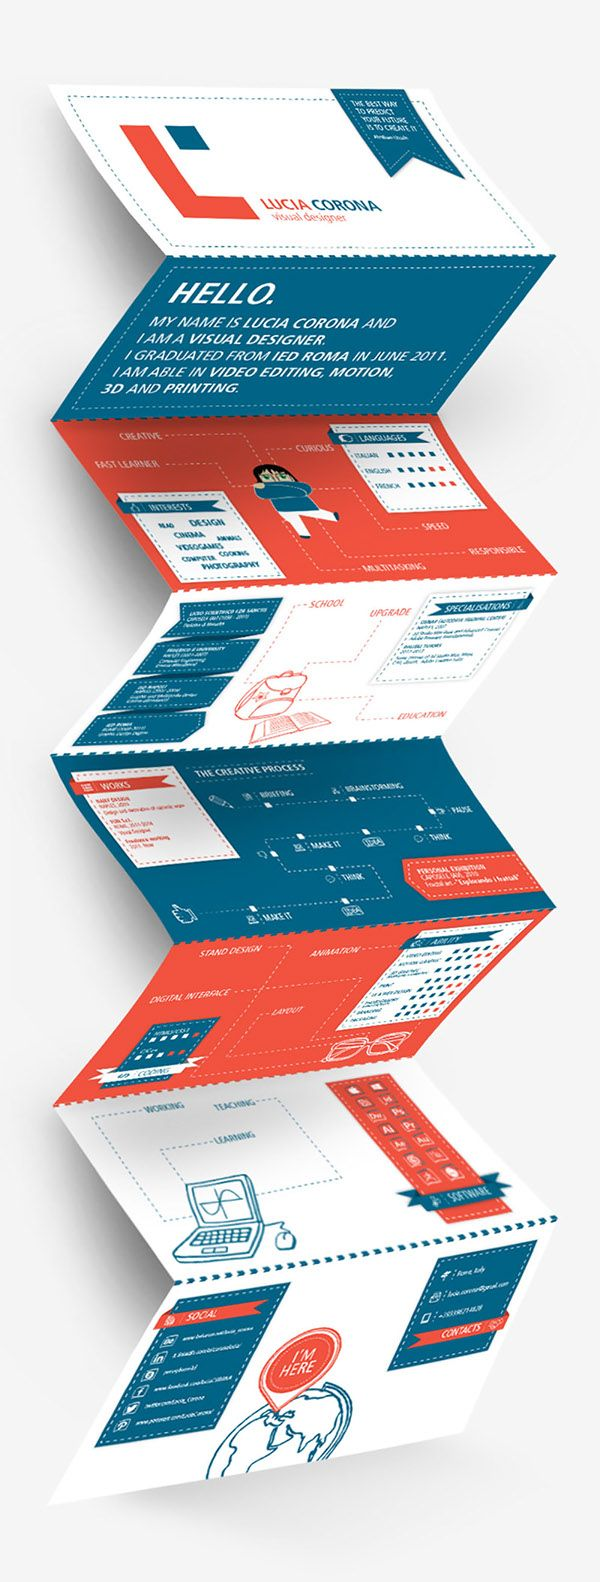 Personal Identity | Resume by Lucia Corona, via Behance